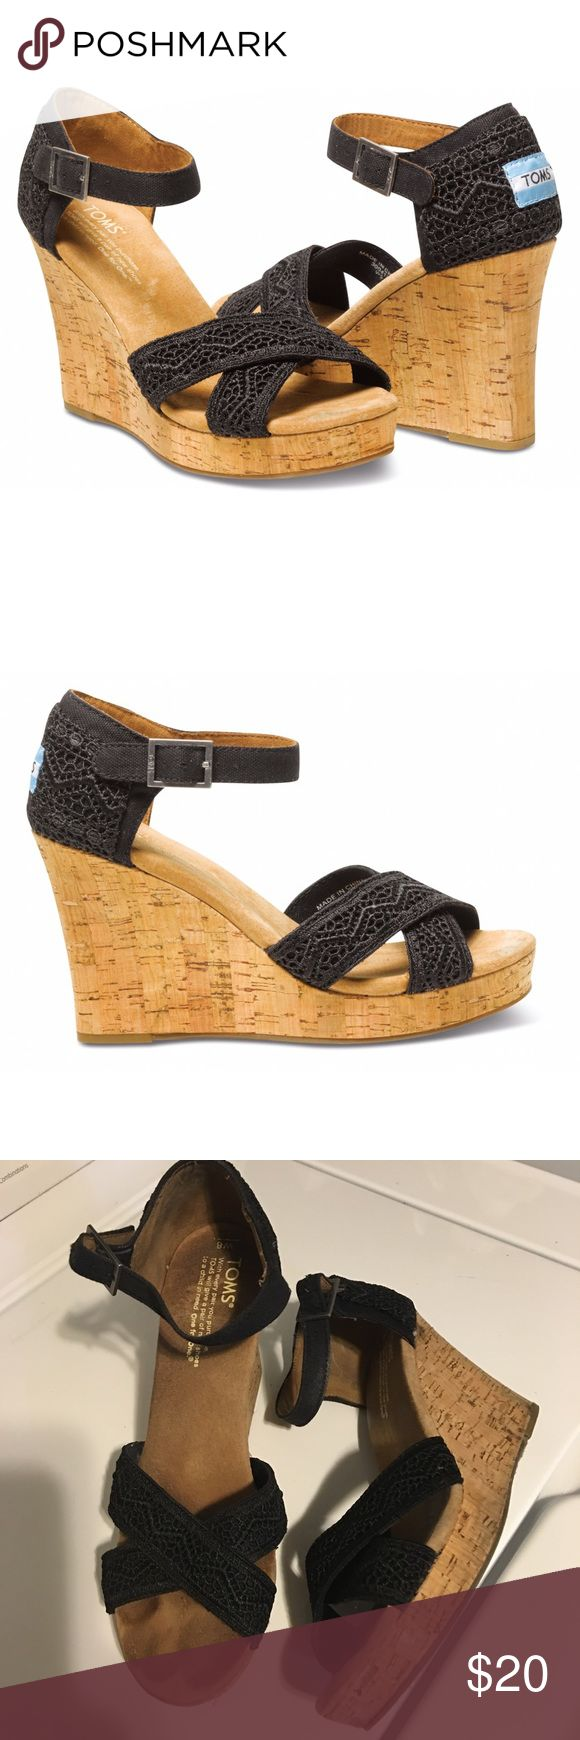 """TOMS Black Crochet Strappy Wedges Open for reasonable offer. The item that you are about to purchase is a TOMS Black Crochet Strappy Wedge. Size 8. Shows wear (pls refer pictures) but over all, the shoes itself is in a great shape. To make an offer, please use """"offer"""" Button. Thank you! TOMS Shoes Wedges"""